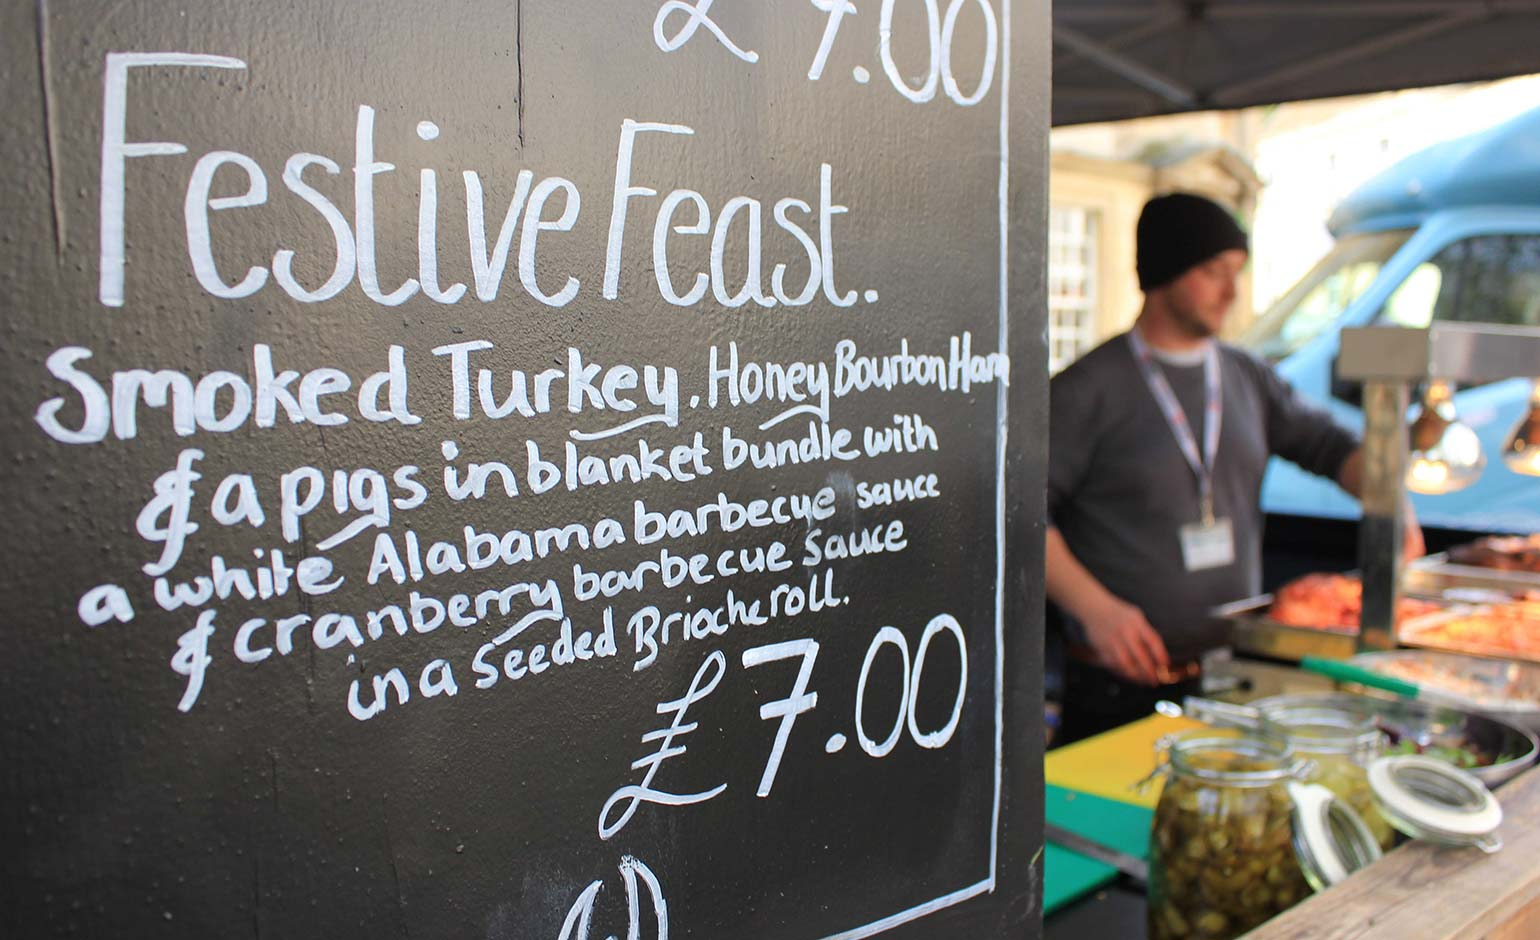 Festive street food market set to return to Kingsmead Square this November